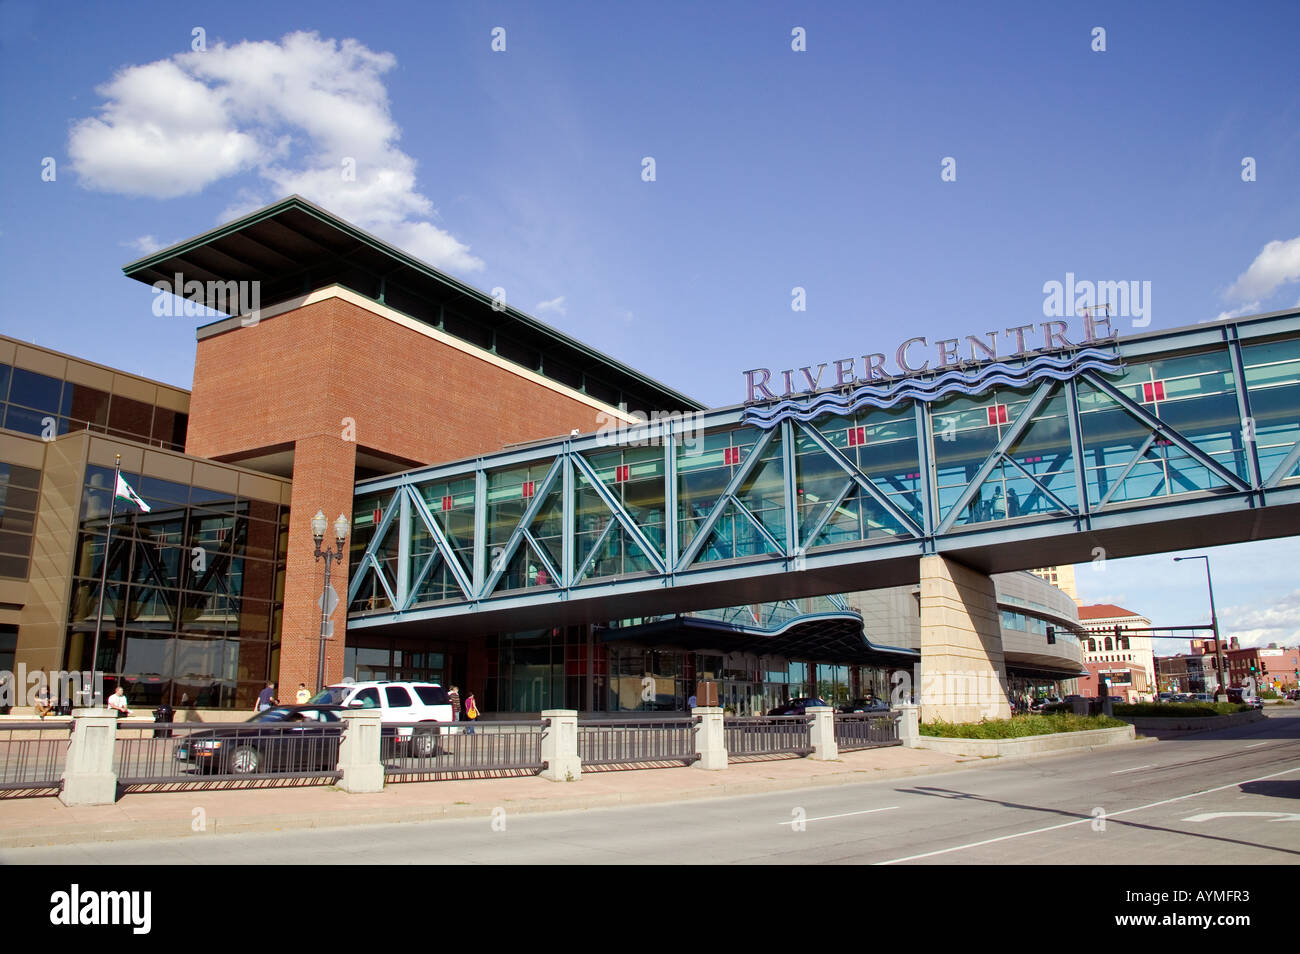 The River Center is a venue for events such as concerts and conventions in St Paul Minnesota - Stock Image